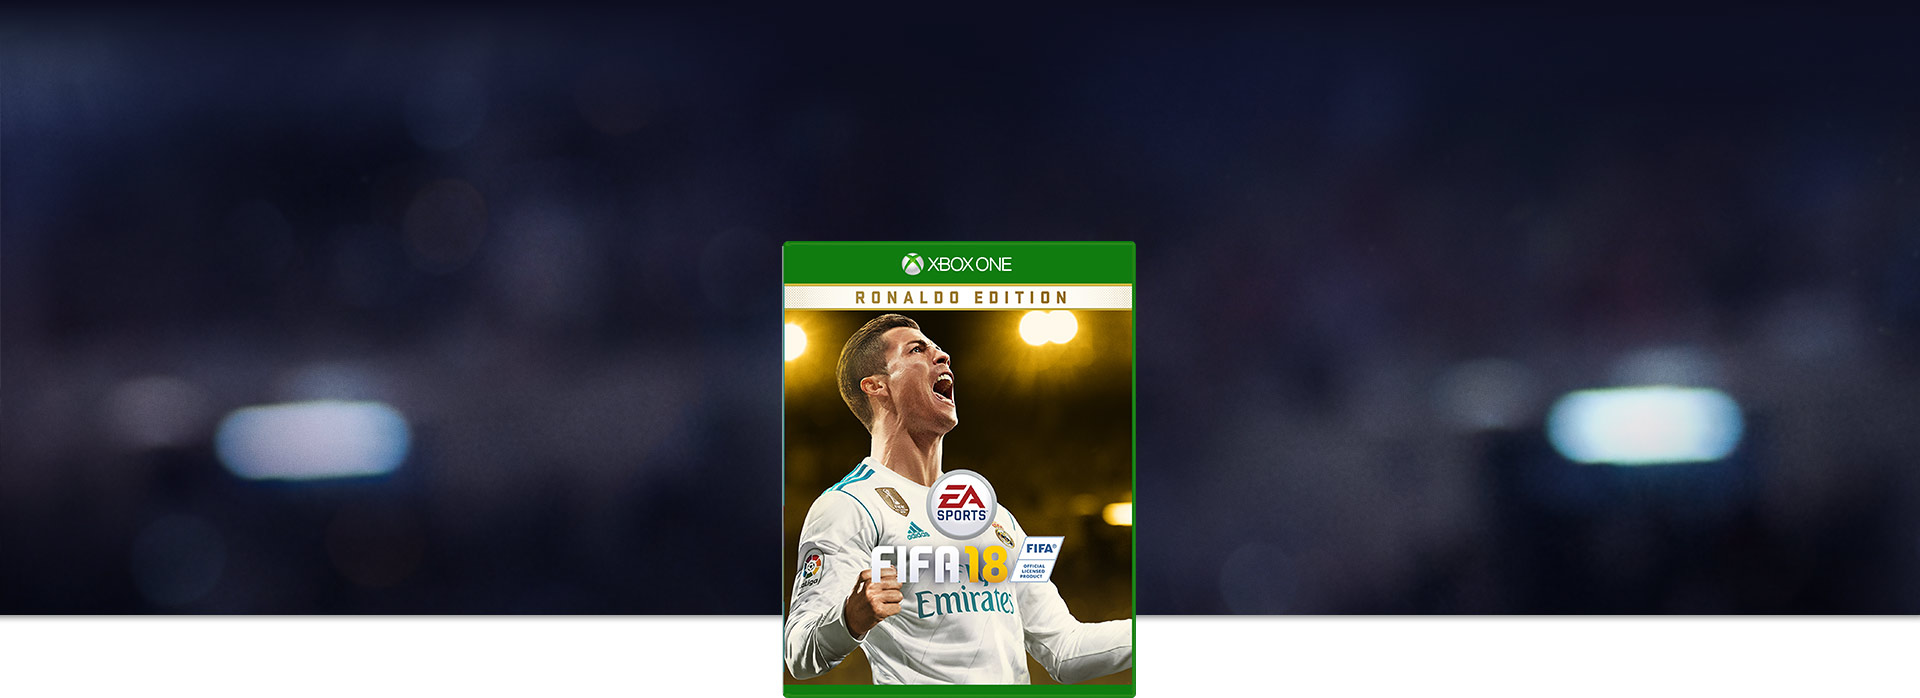 FIFA 18 boxshot, blurry view of stadium lights